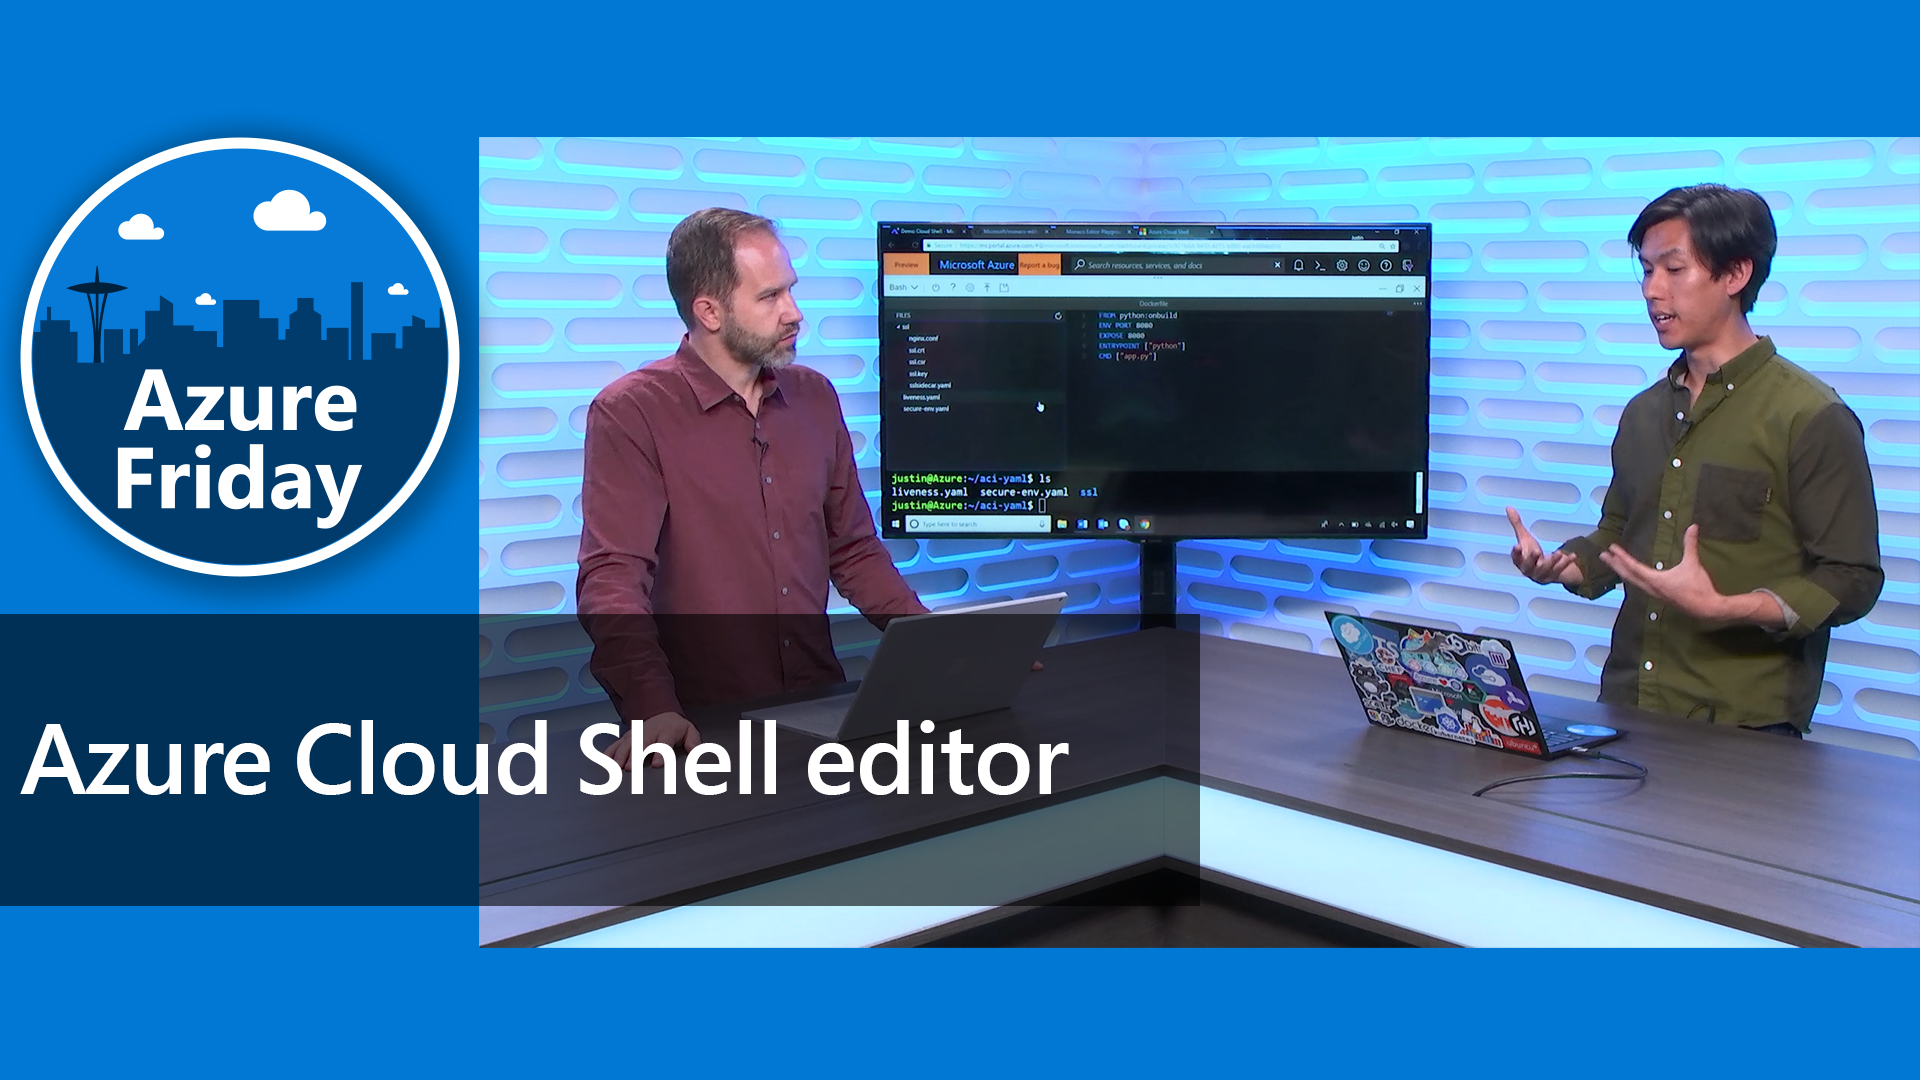 Azure Cloud Shell editor